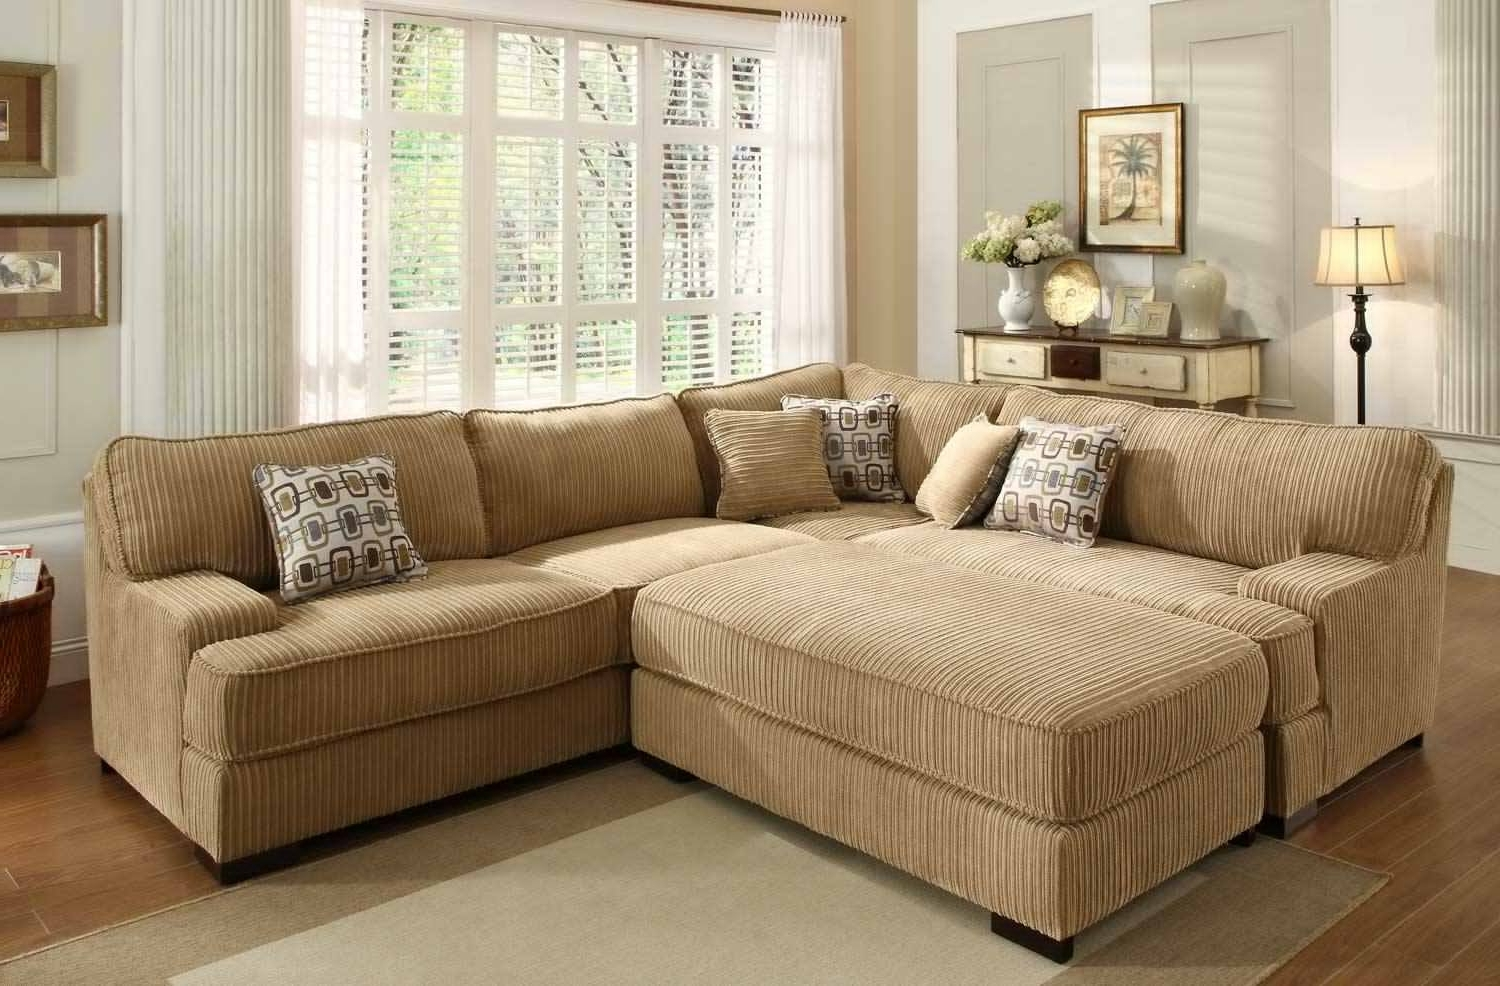 Cozy Sectional Sofas For Famous Sectional Sofa Design: Cozy Sectional Sofas Cheap Couch Recliner (View 5 of 20)